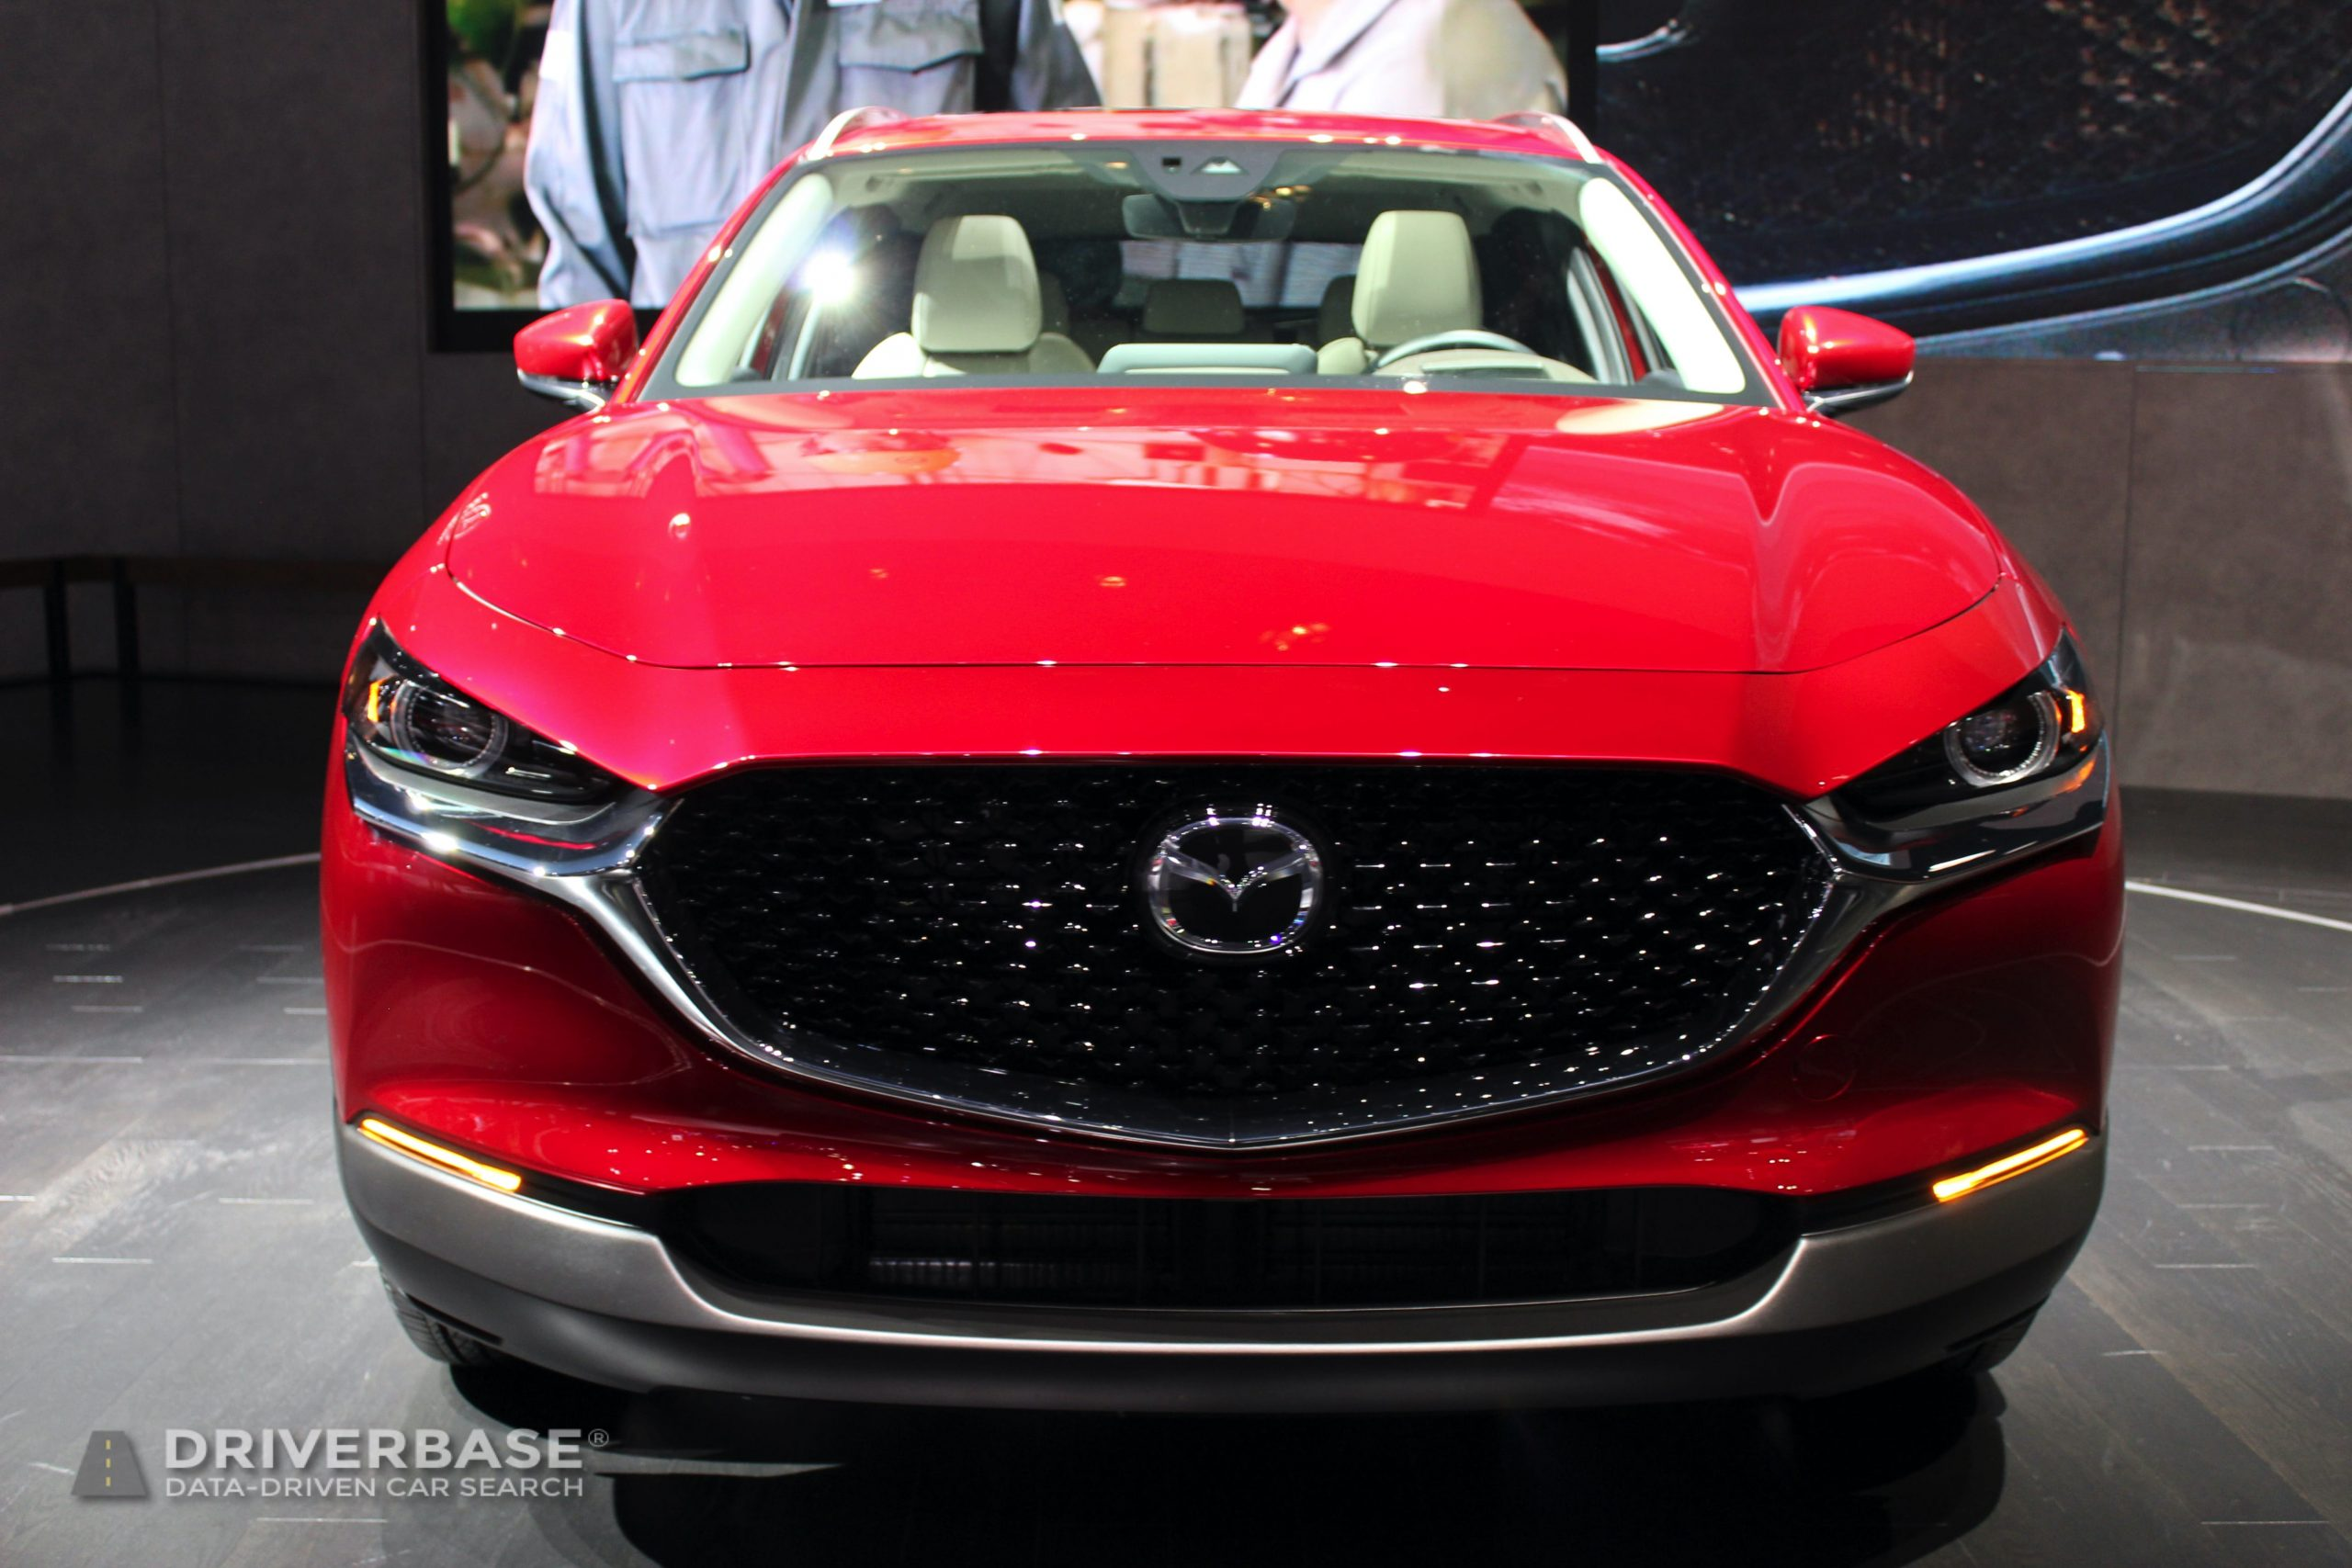 2020 Mazda CX-30 at the 2019 Los Angeles Auto Show